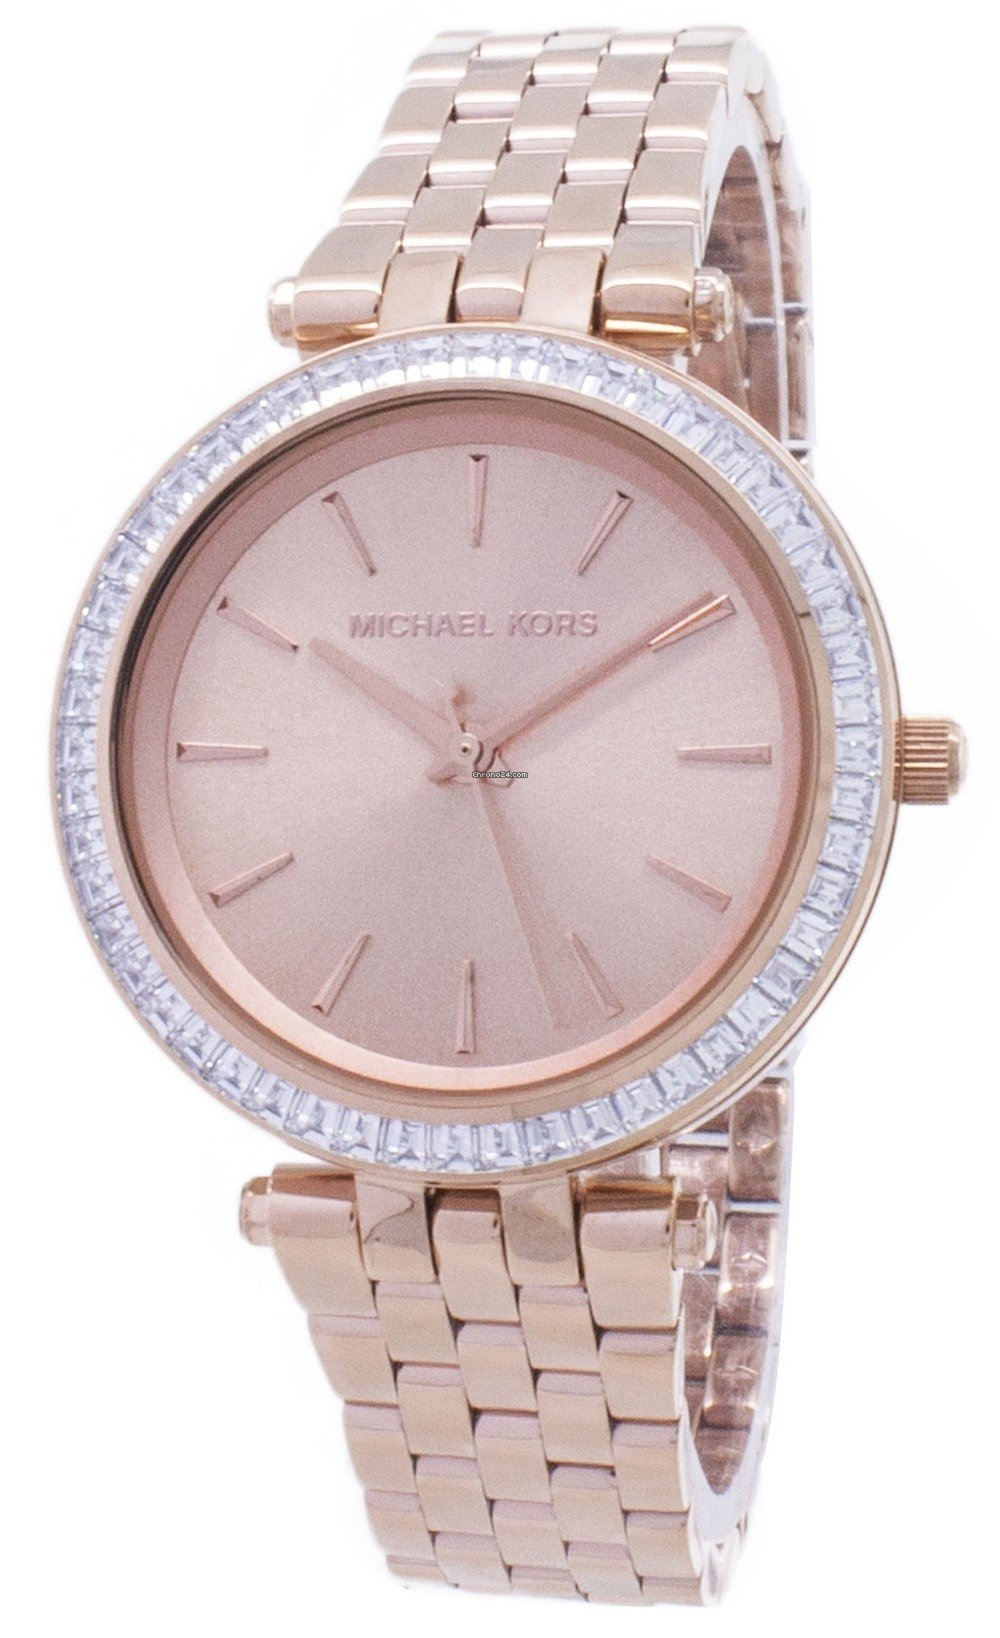 b4d4d310db04 Michael Kors Mini Darci Crystals Rose Gold Tone MK3366 Women s... for  150  for sale from a Seller on Chrono24